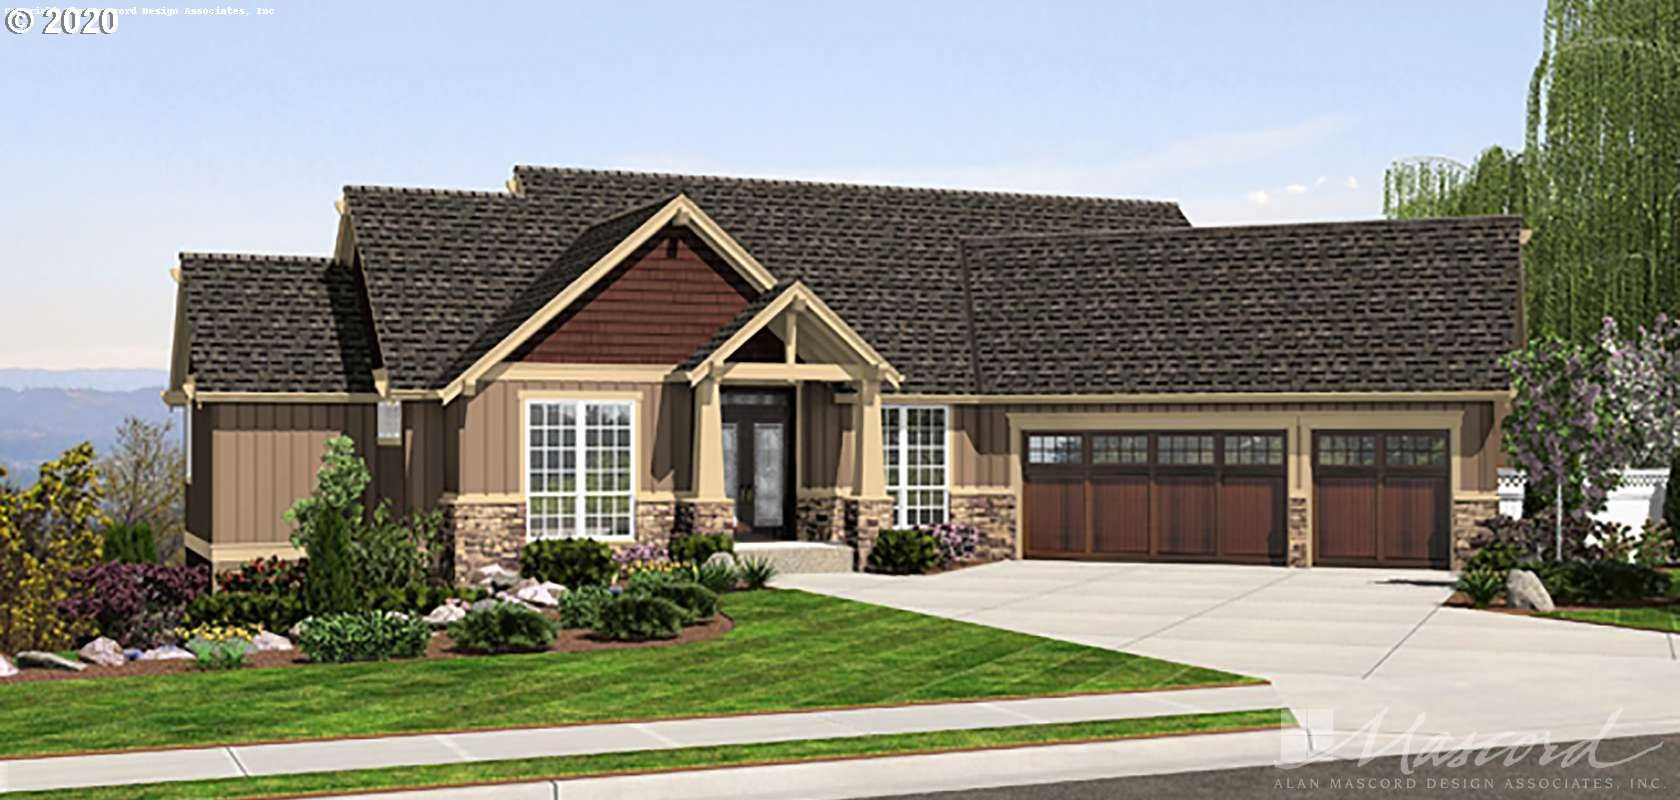 $1,500,000 - 4Br/4Ba -  for Sale in Parrett Mountain View Estates, Sherwood